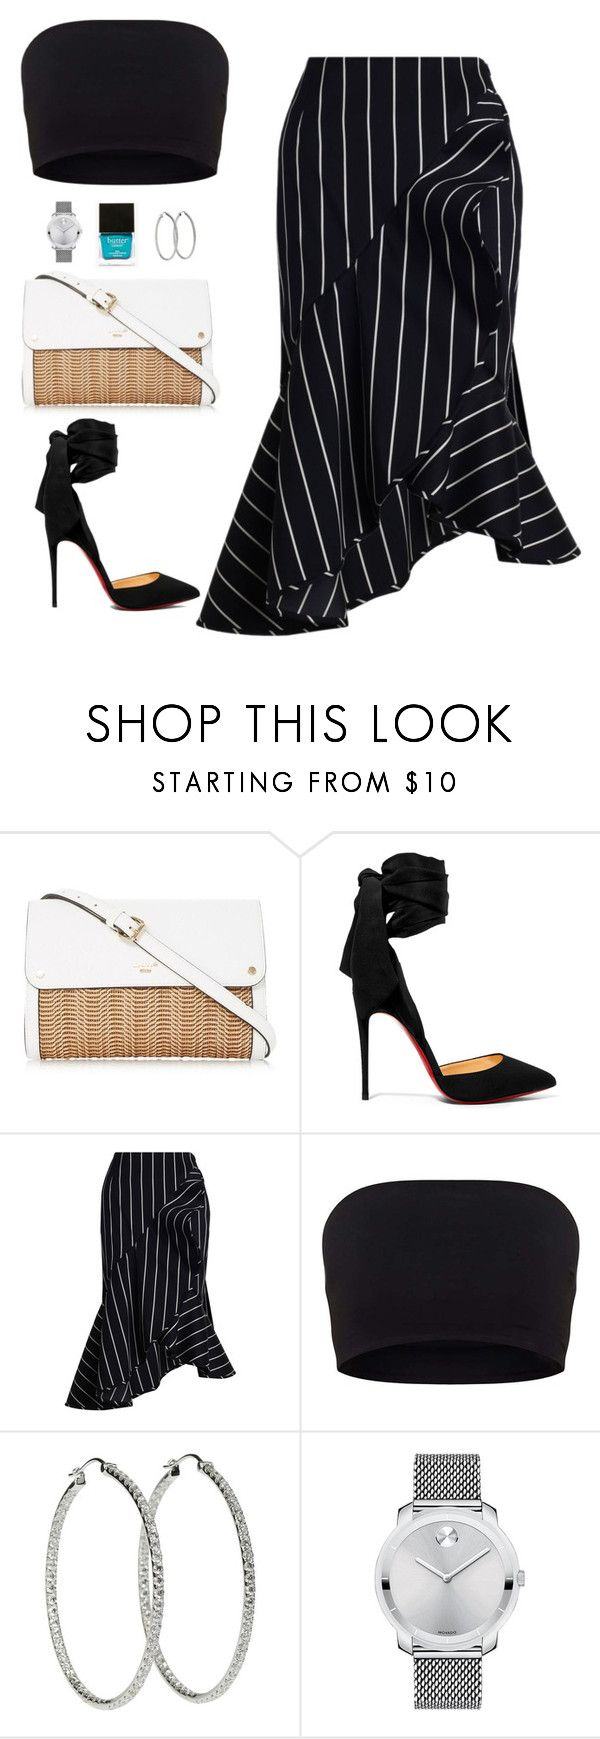 """Untitled #591"" by hayleyl22 ❤ liked on Polyvore featuring Christian Louboutin, Zimmermann, Movado and Butter London"